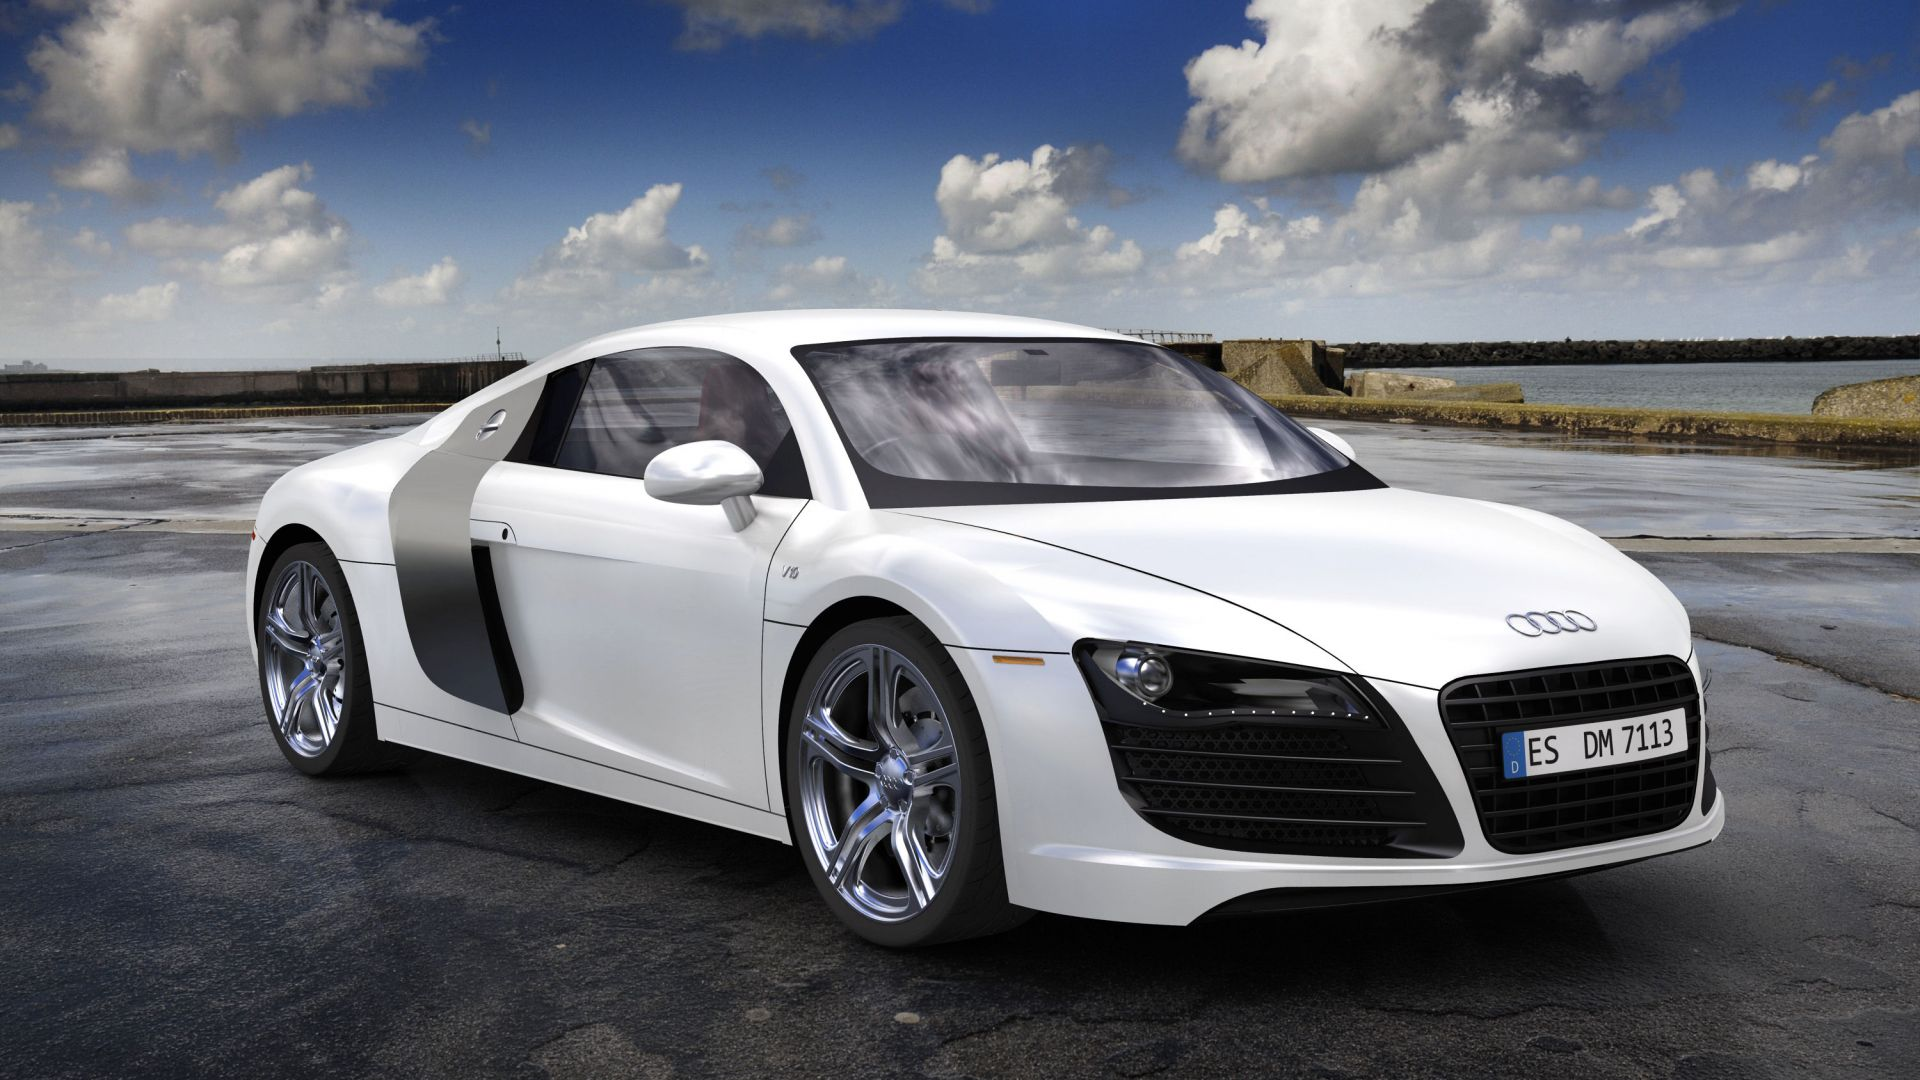 Audi R8, sport car, coupe, review, buy, rent, test drive (horizontal)